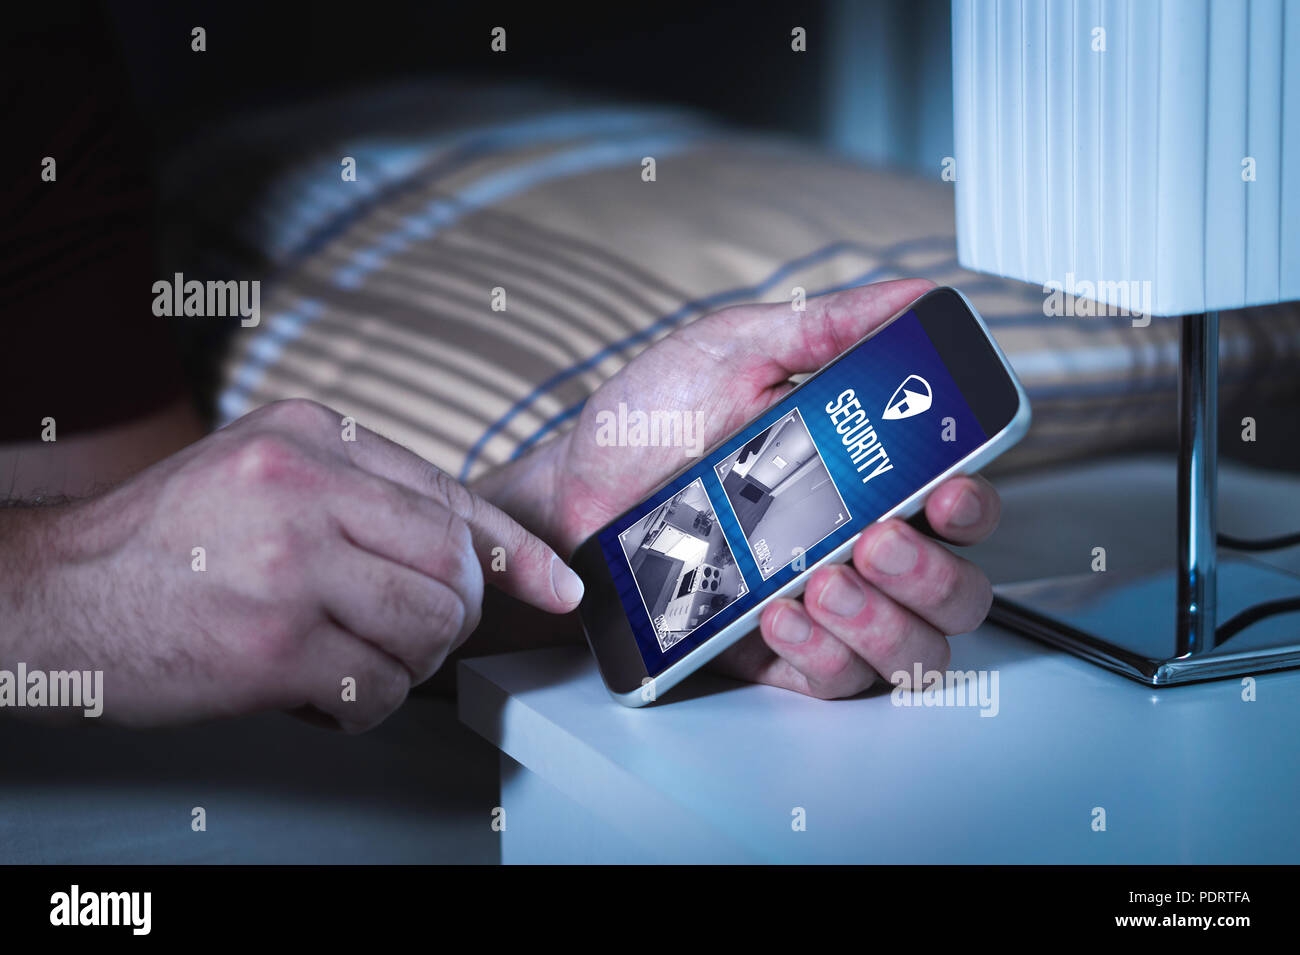 Man using home security system and application in smartphone. Watching protection and surveillance camera live footage inside a house or apartment. - Stock Image